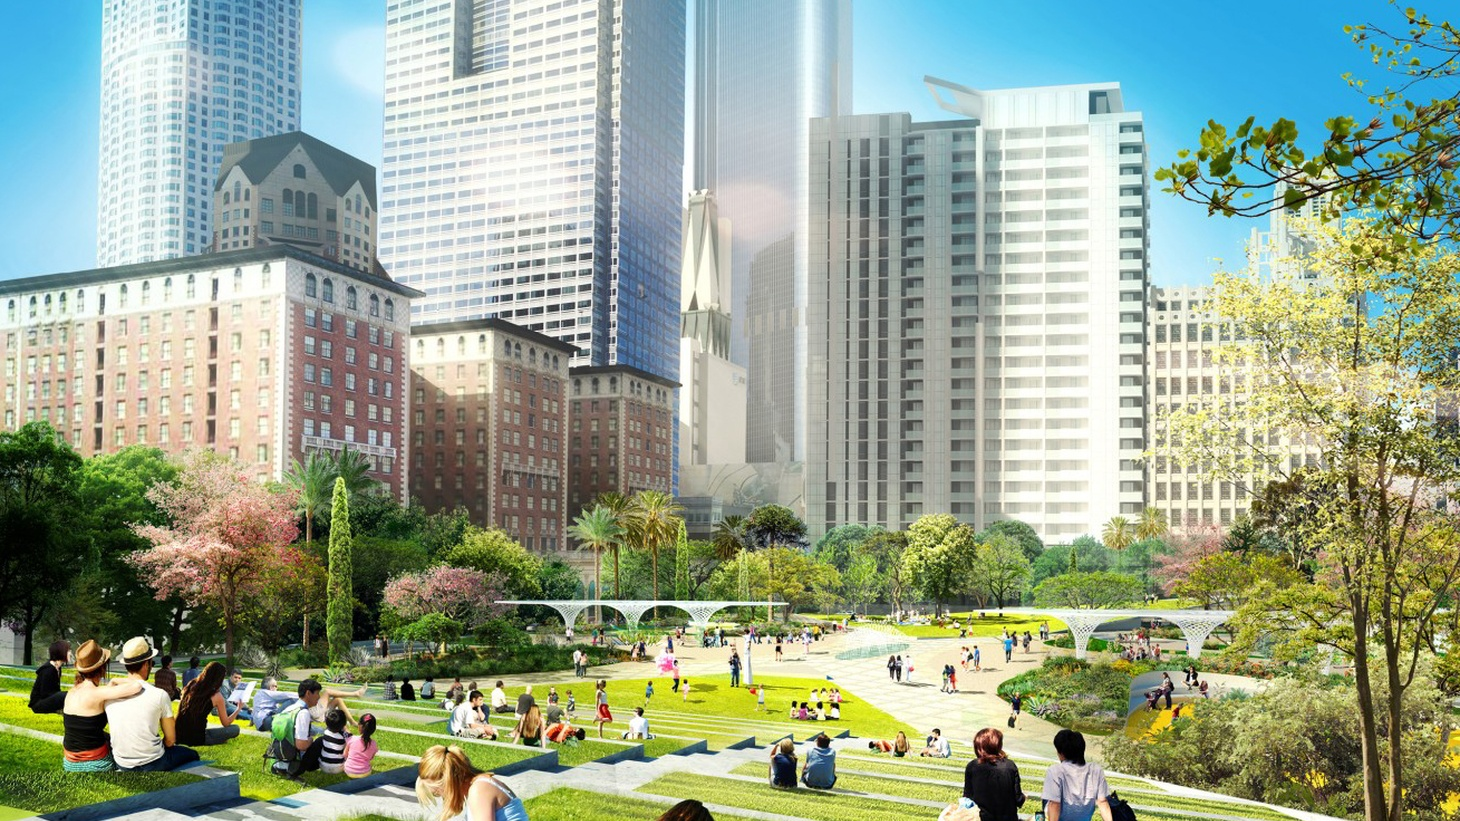 Today four competing schemes for a renewed Pershing Square were unveiled. Tonight the design teams will present them to the public at Broadway's Palace Theater — and the crowd is expected to reach capacity.